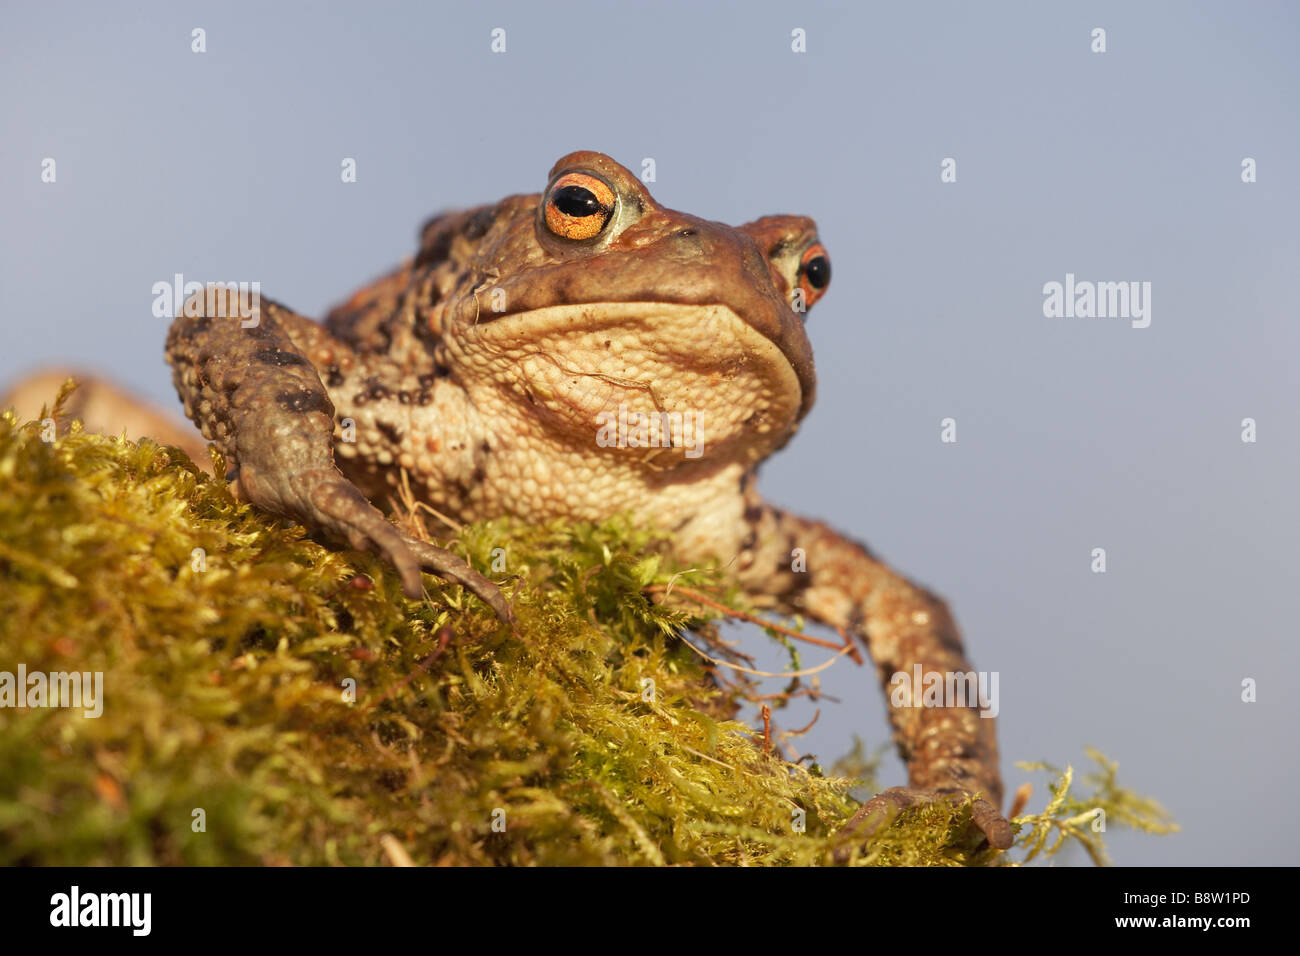 European Common Toad (Bufo bufo), adult male on moss-covered rock - Stock Image